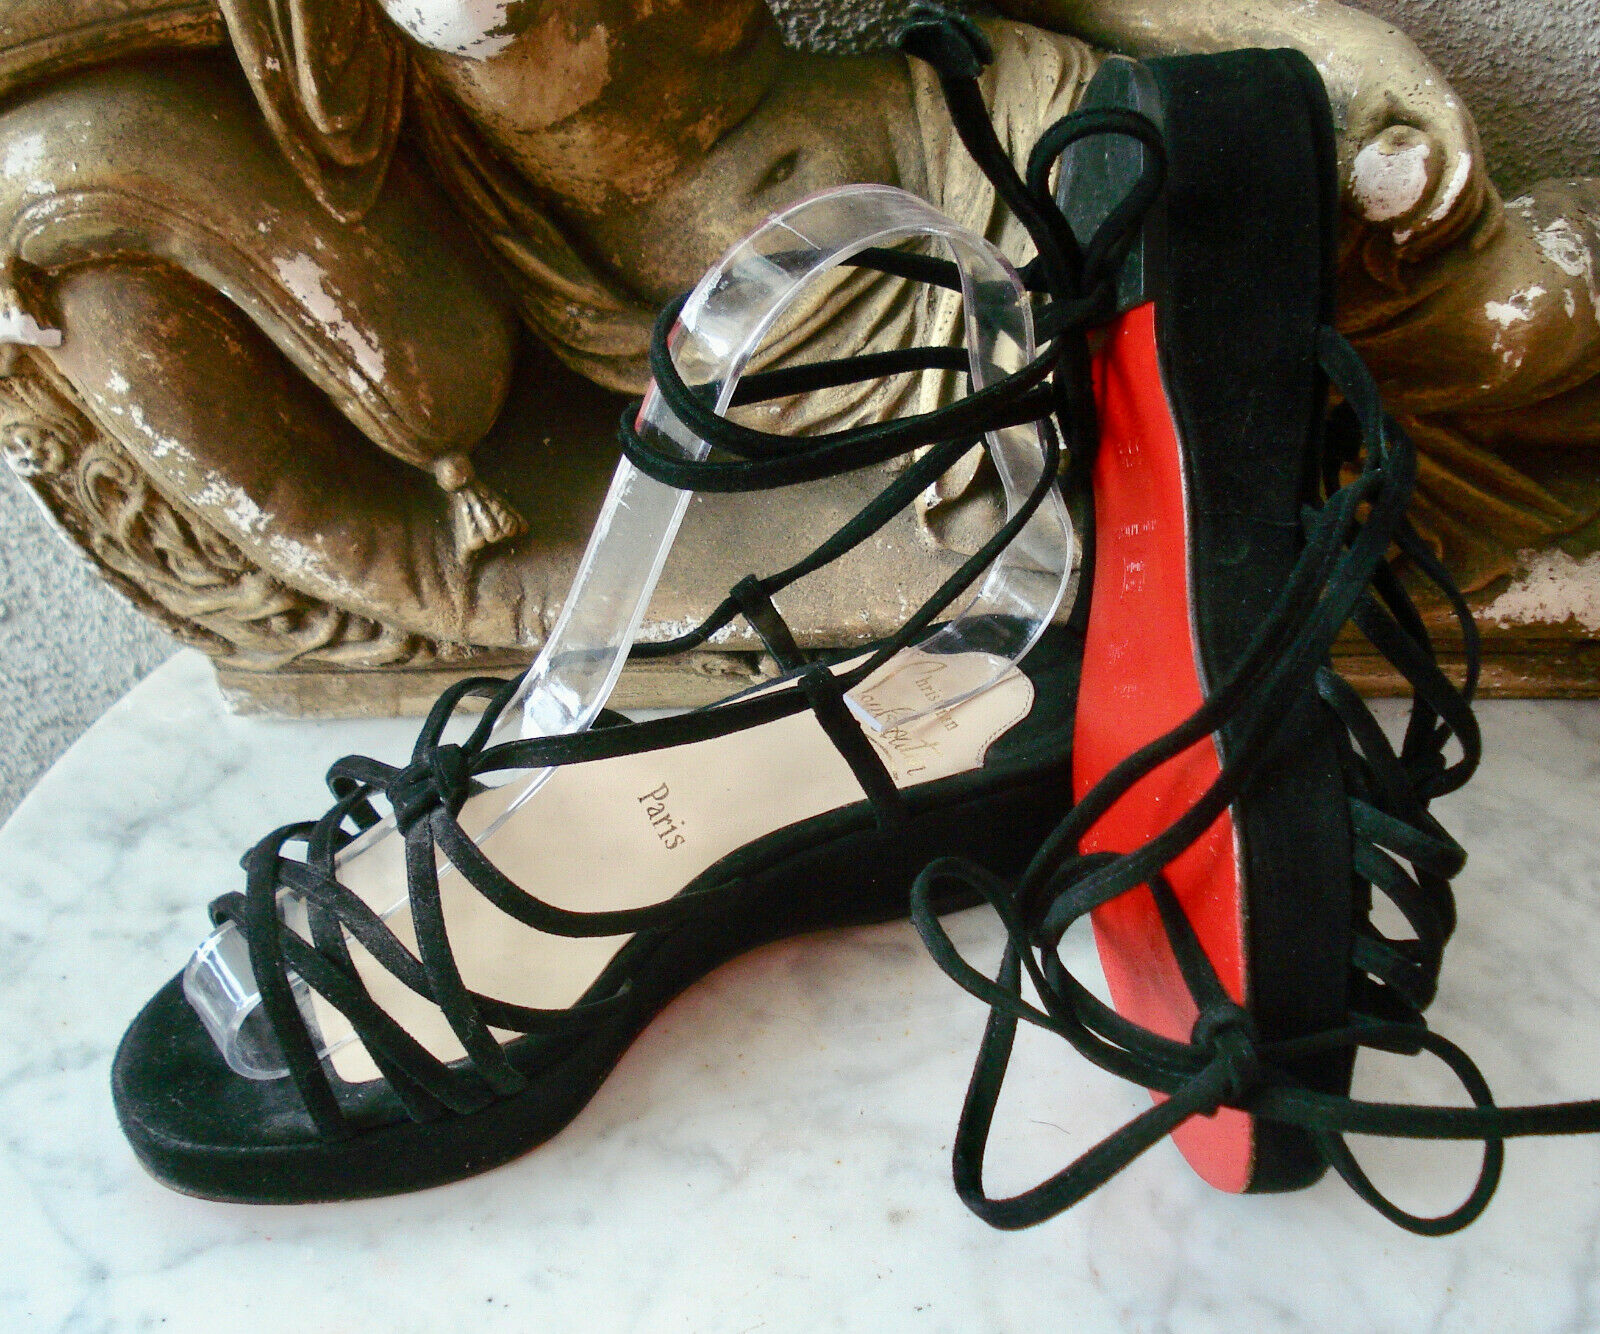 Christian Louboutin Ankle  Tied Strappy Flatbform Sandals  35.5 (US -5.5, UK -3.5)  seleziona tra le nuove marche come